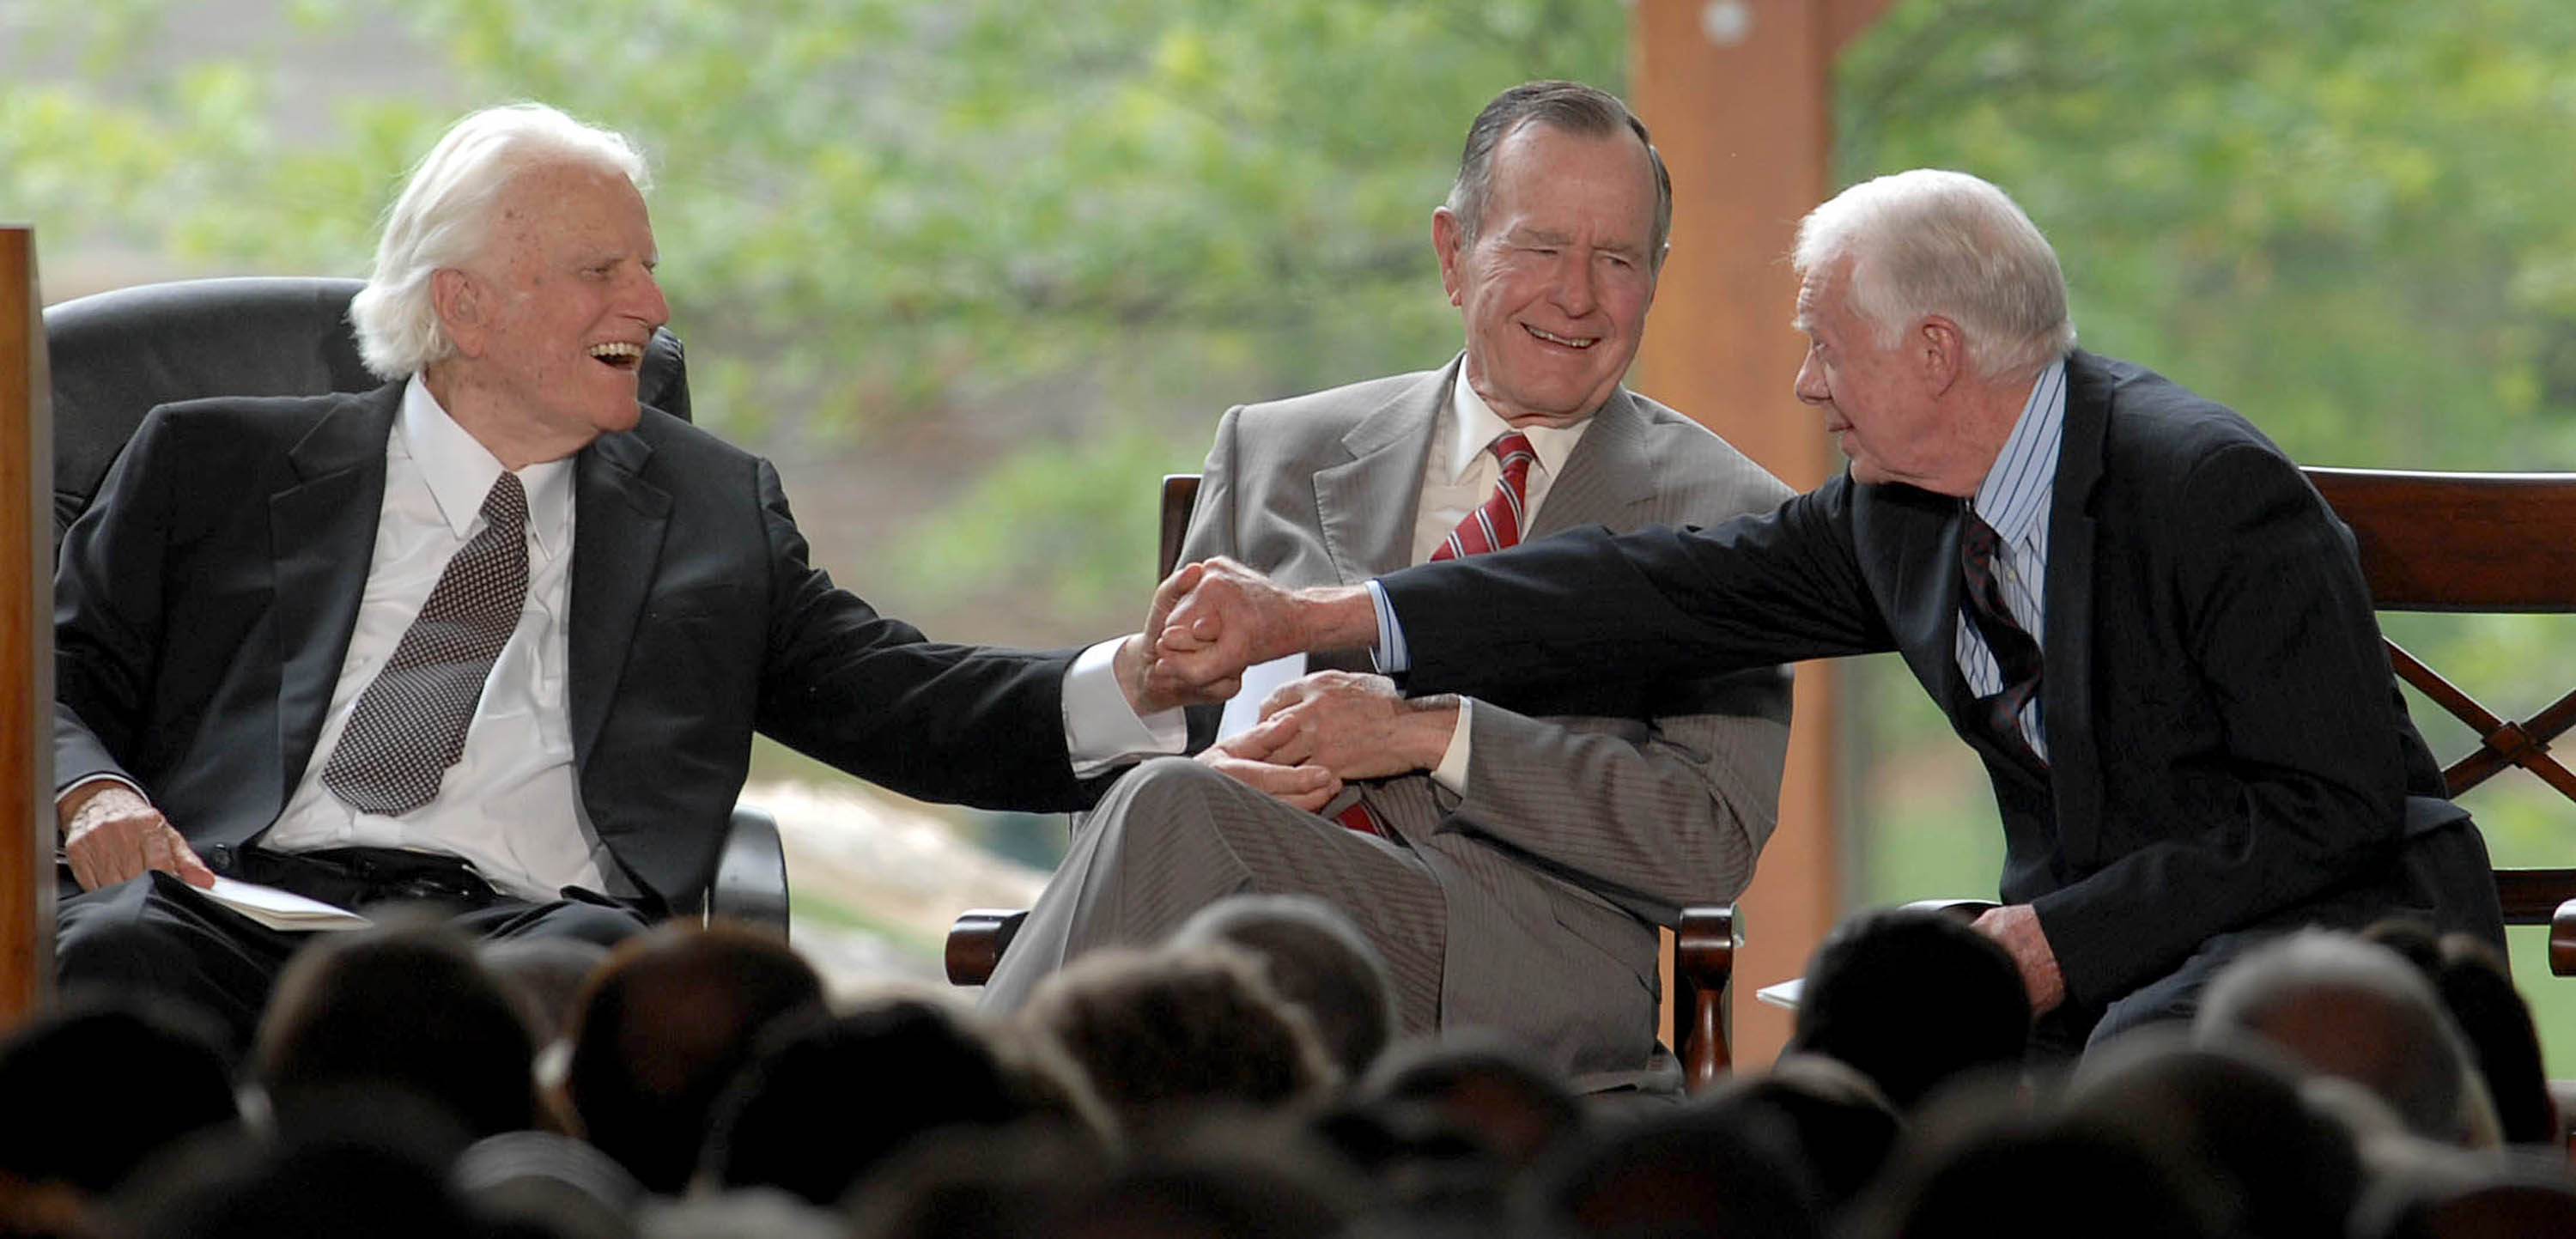 Billy Graham shakes hands with Billy Carter at the dedication ceremony for the Billy Graham Library in Charlotte, North Carolina, Thursday, May 31, 2007. (Todd Sumlin/Charlotte Observer/MCT)